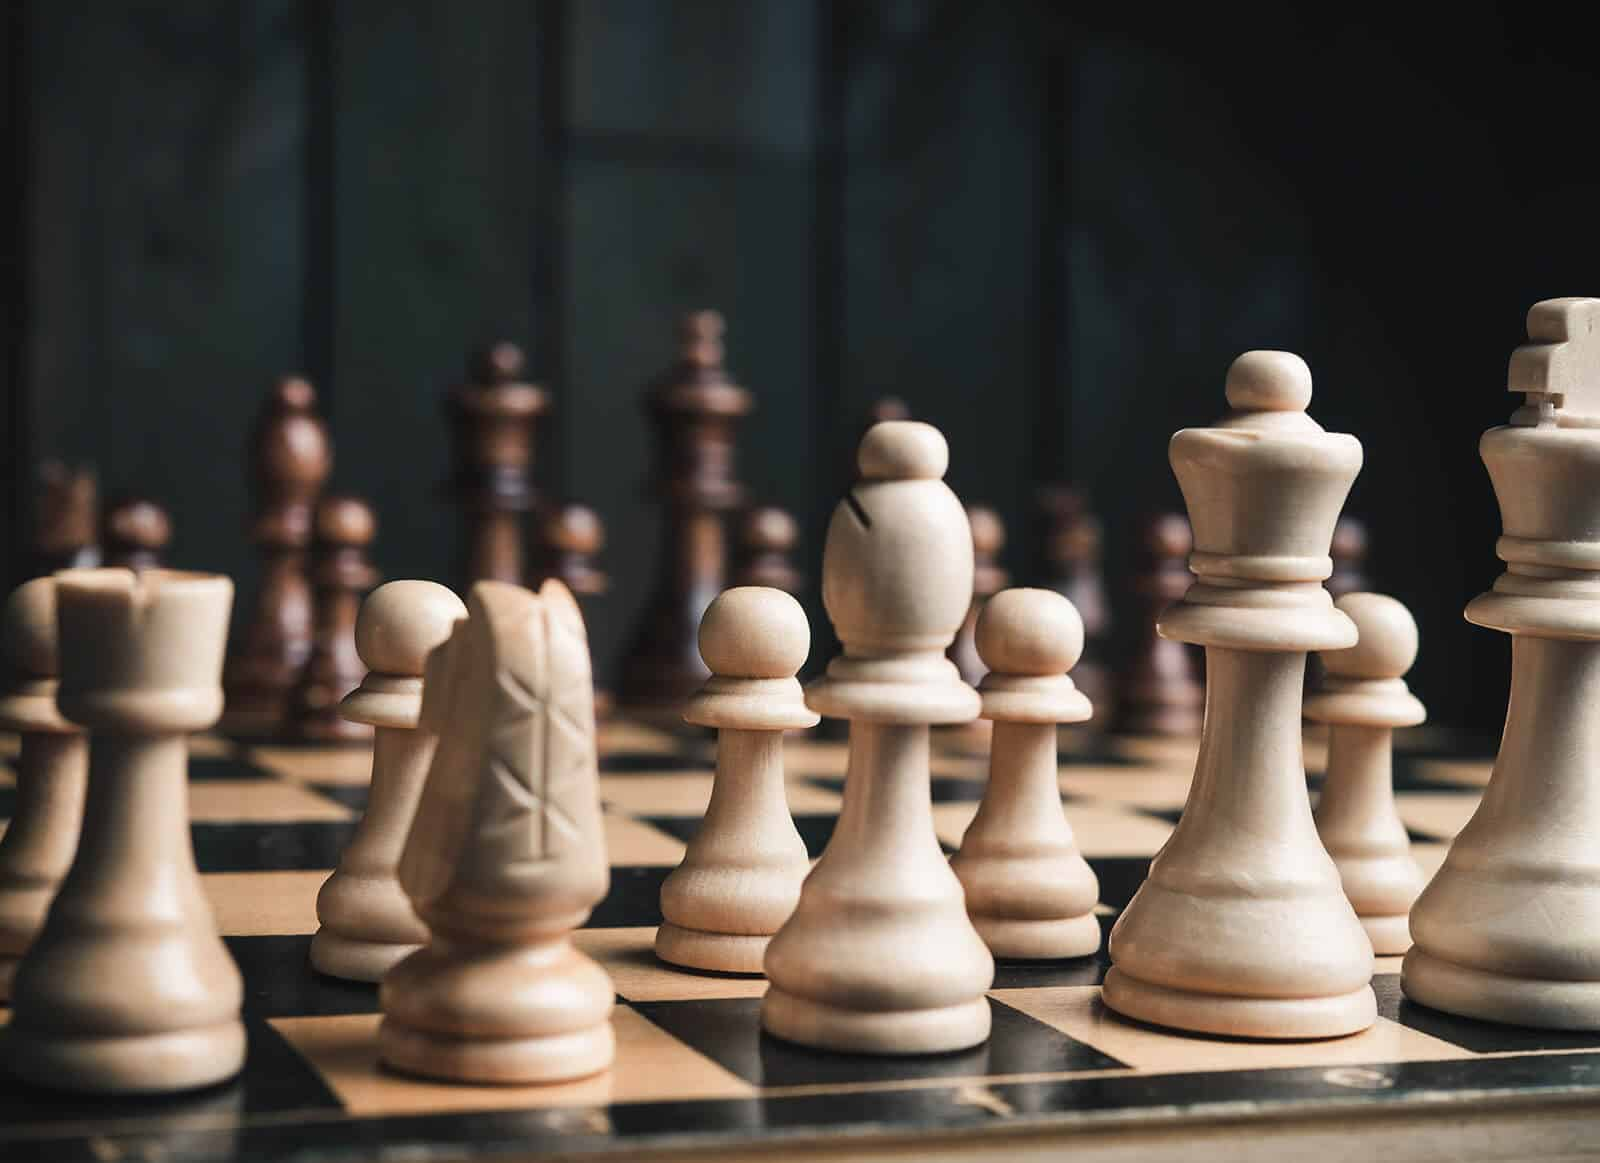 The Most Beautiful Wooden Chess Sets You Can Buy